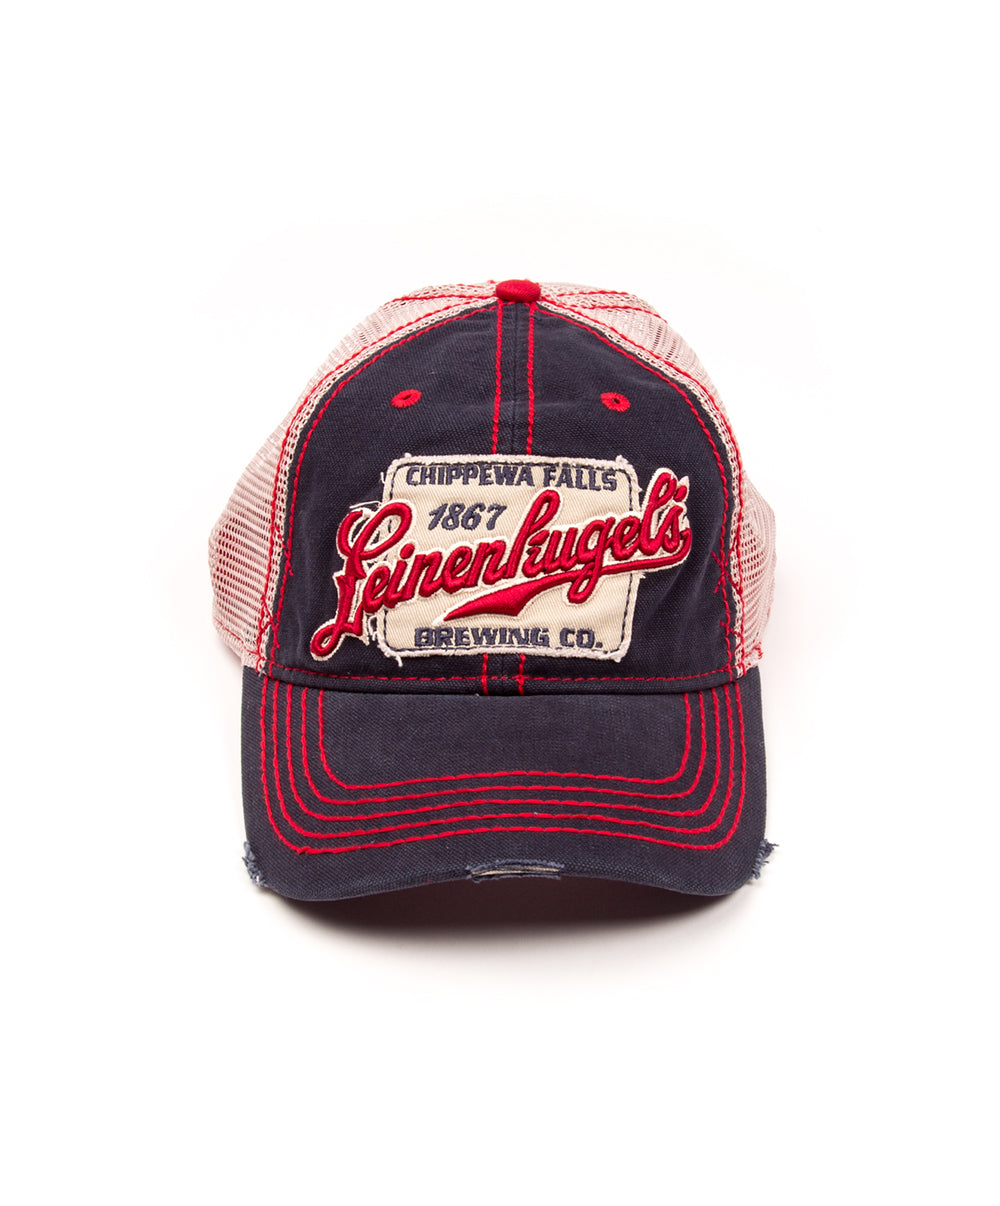 ROAD TRIP NAVY/RED BALL CAP